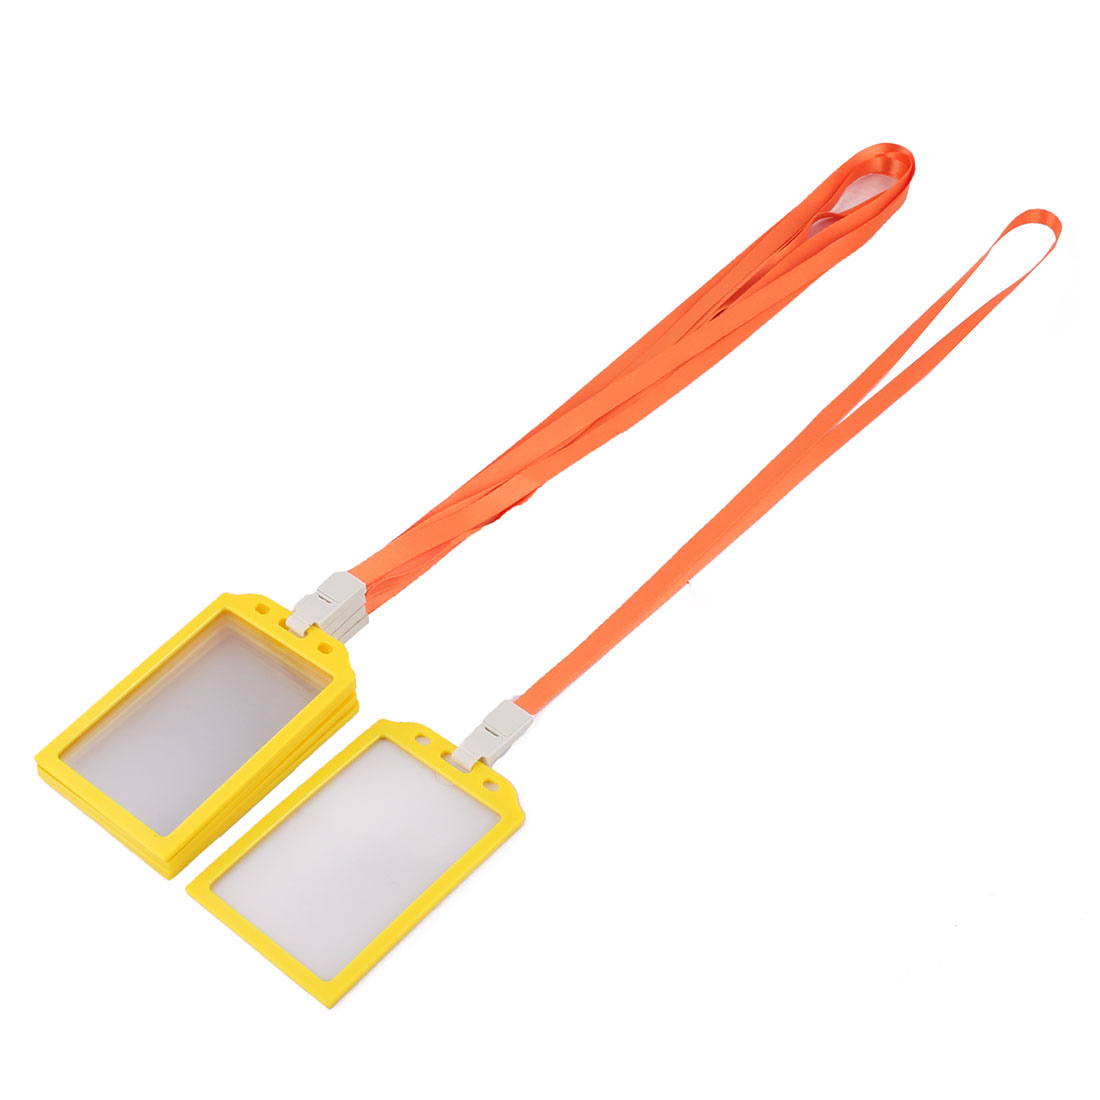 Factory Worker Plastic Rectangle Name ID Card Tag Badge Holder Container Orange 5 Pcs